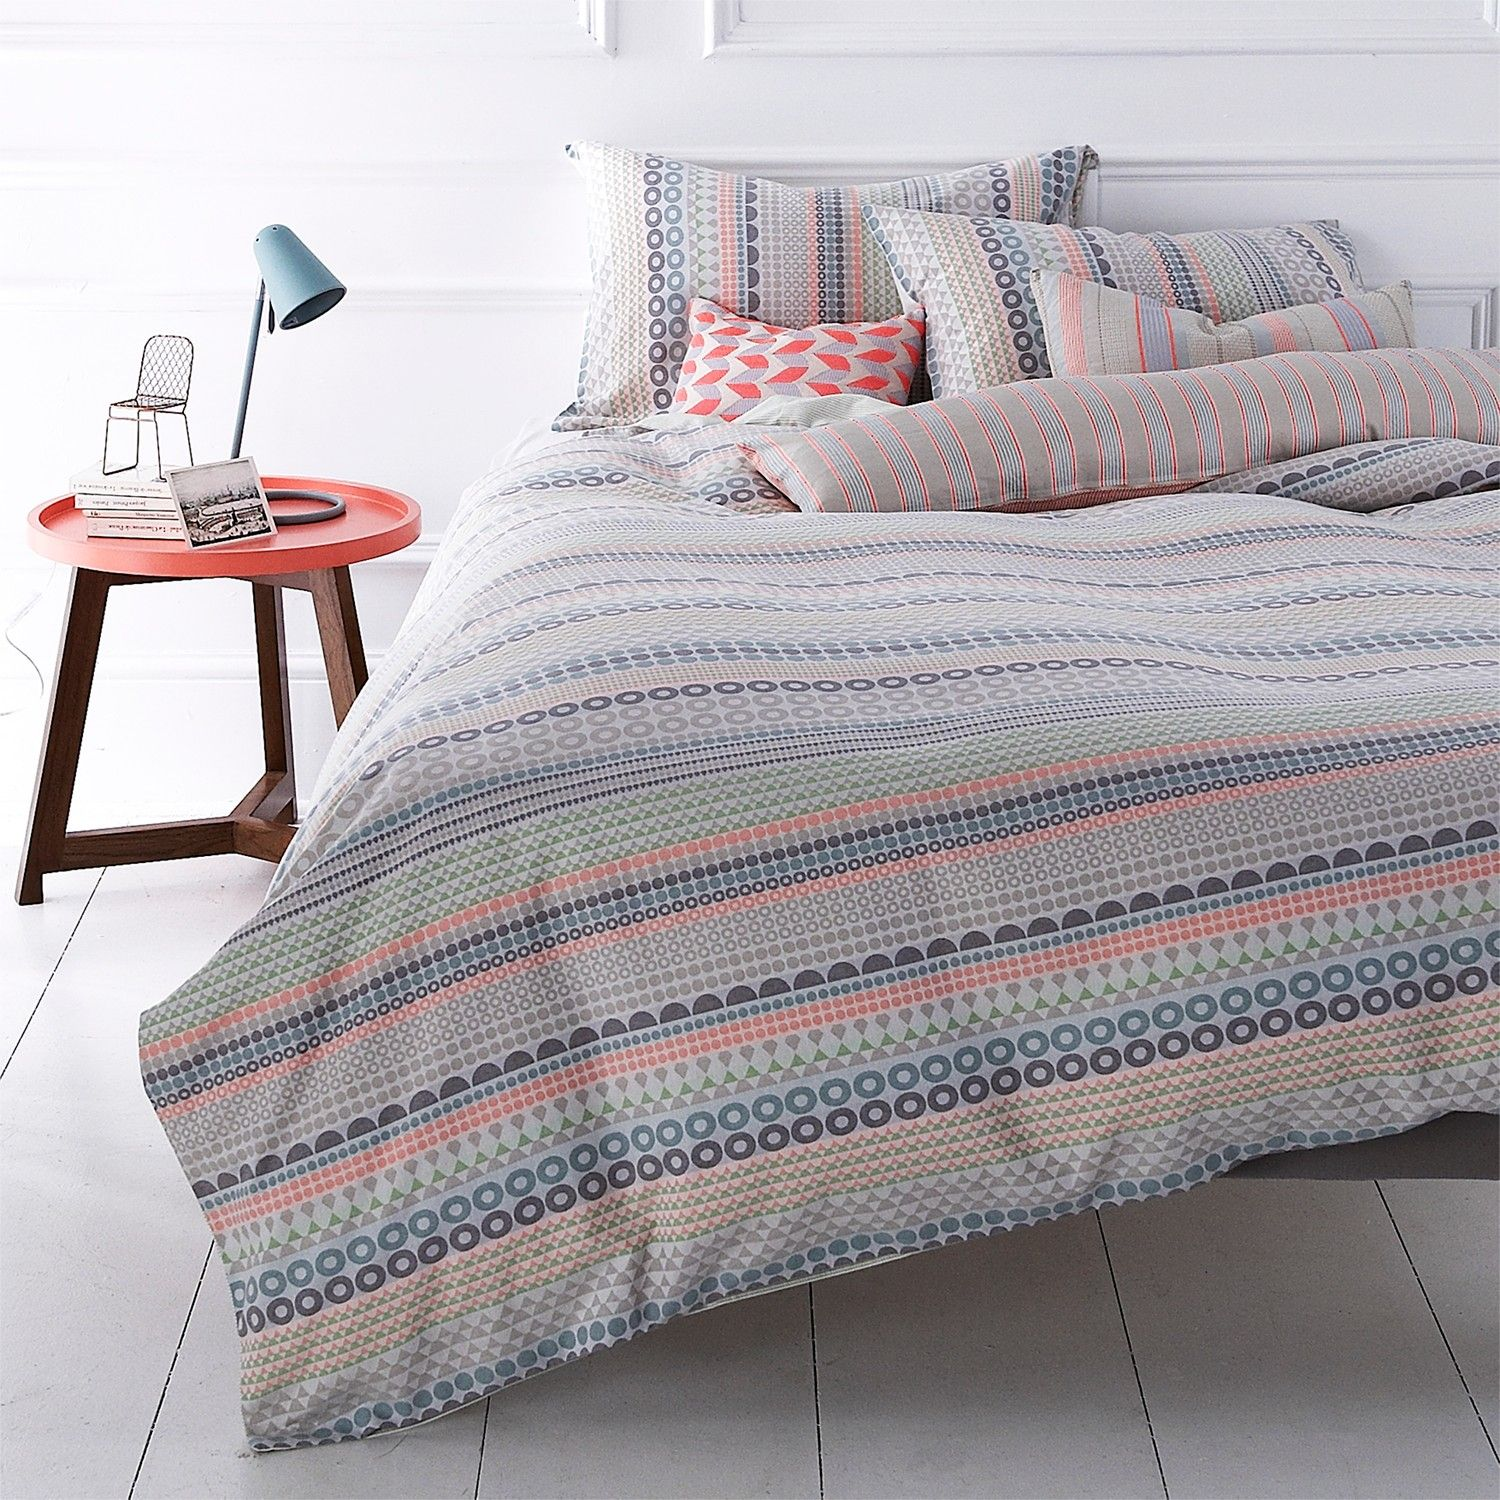 Buy margo selby for john lewis mosaic bedding multi online at